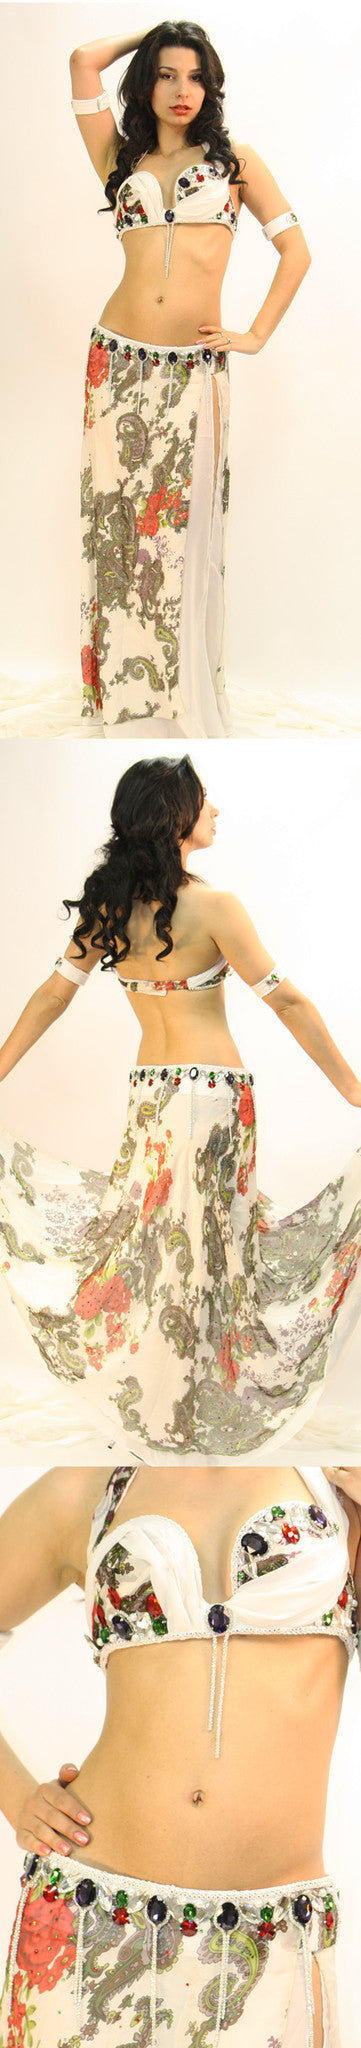 Hoda Zaki Eman Zaki Two-Piece Costume